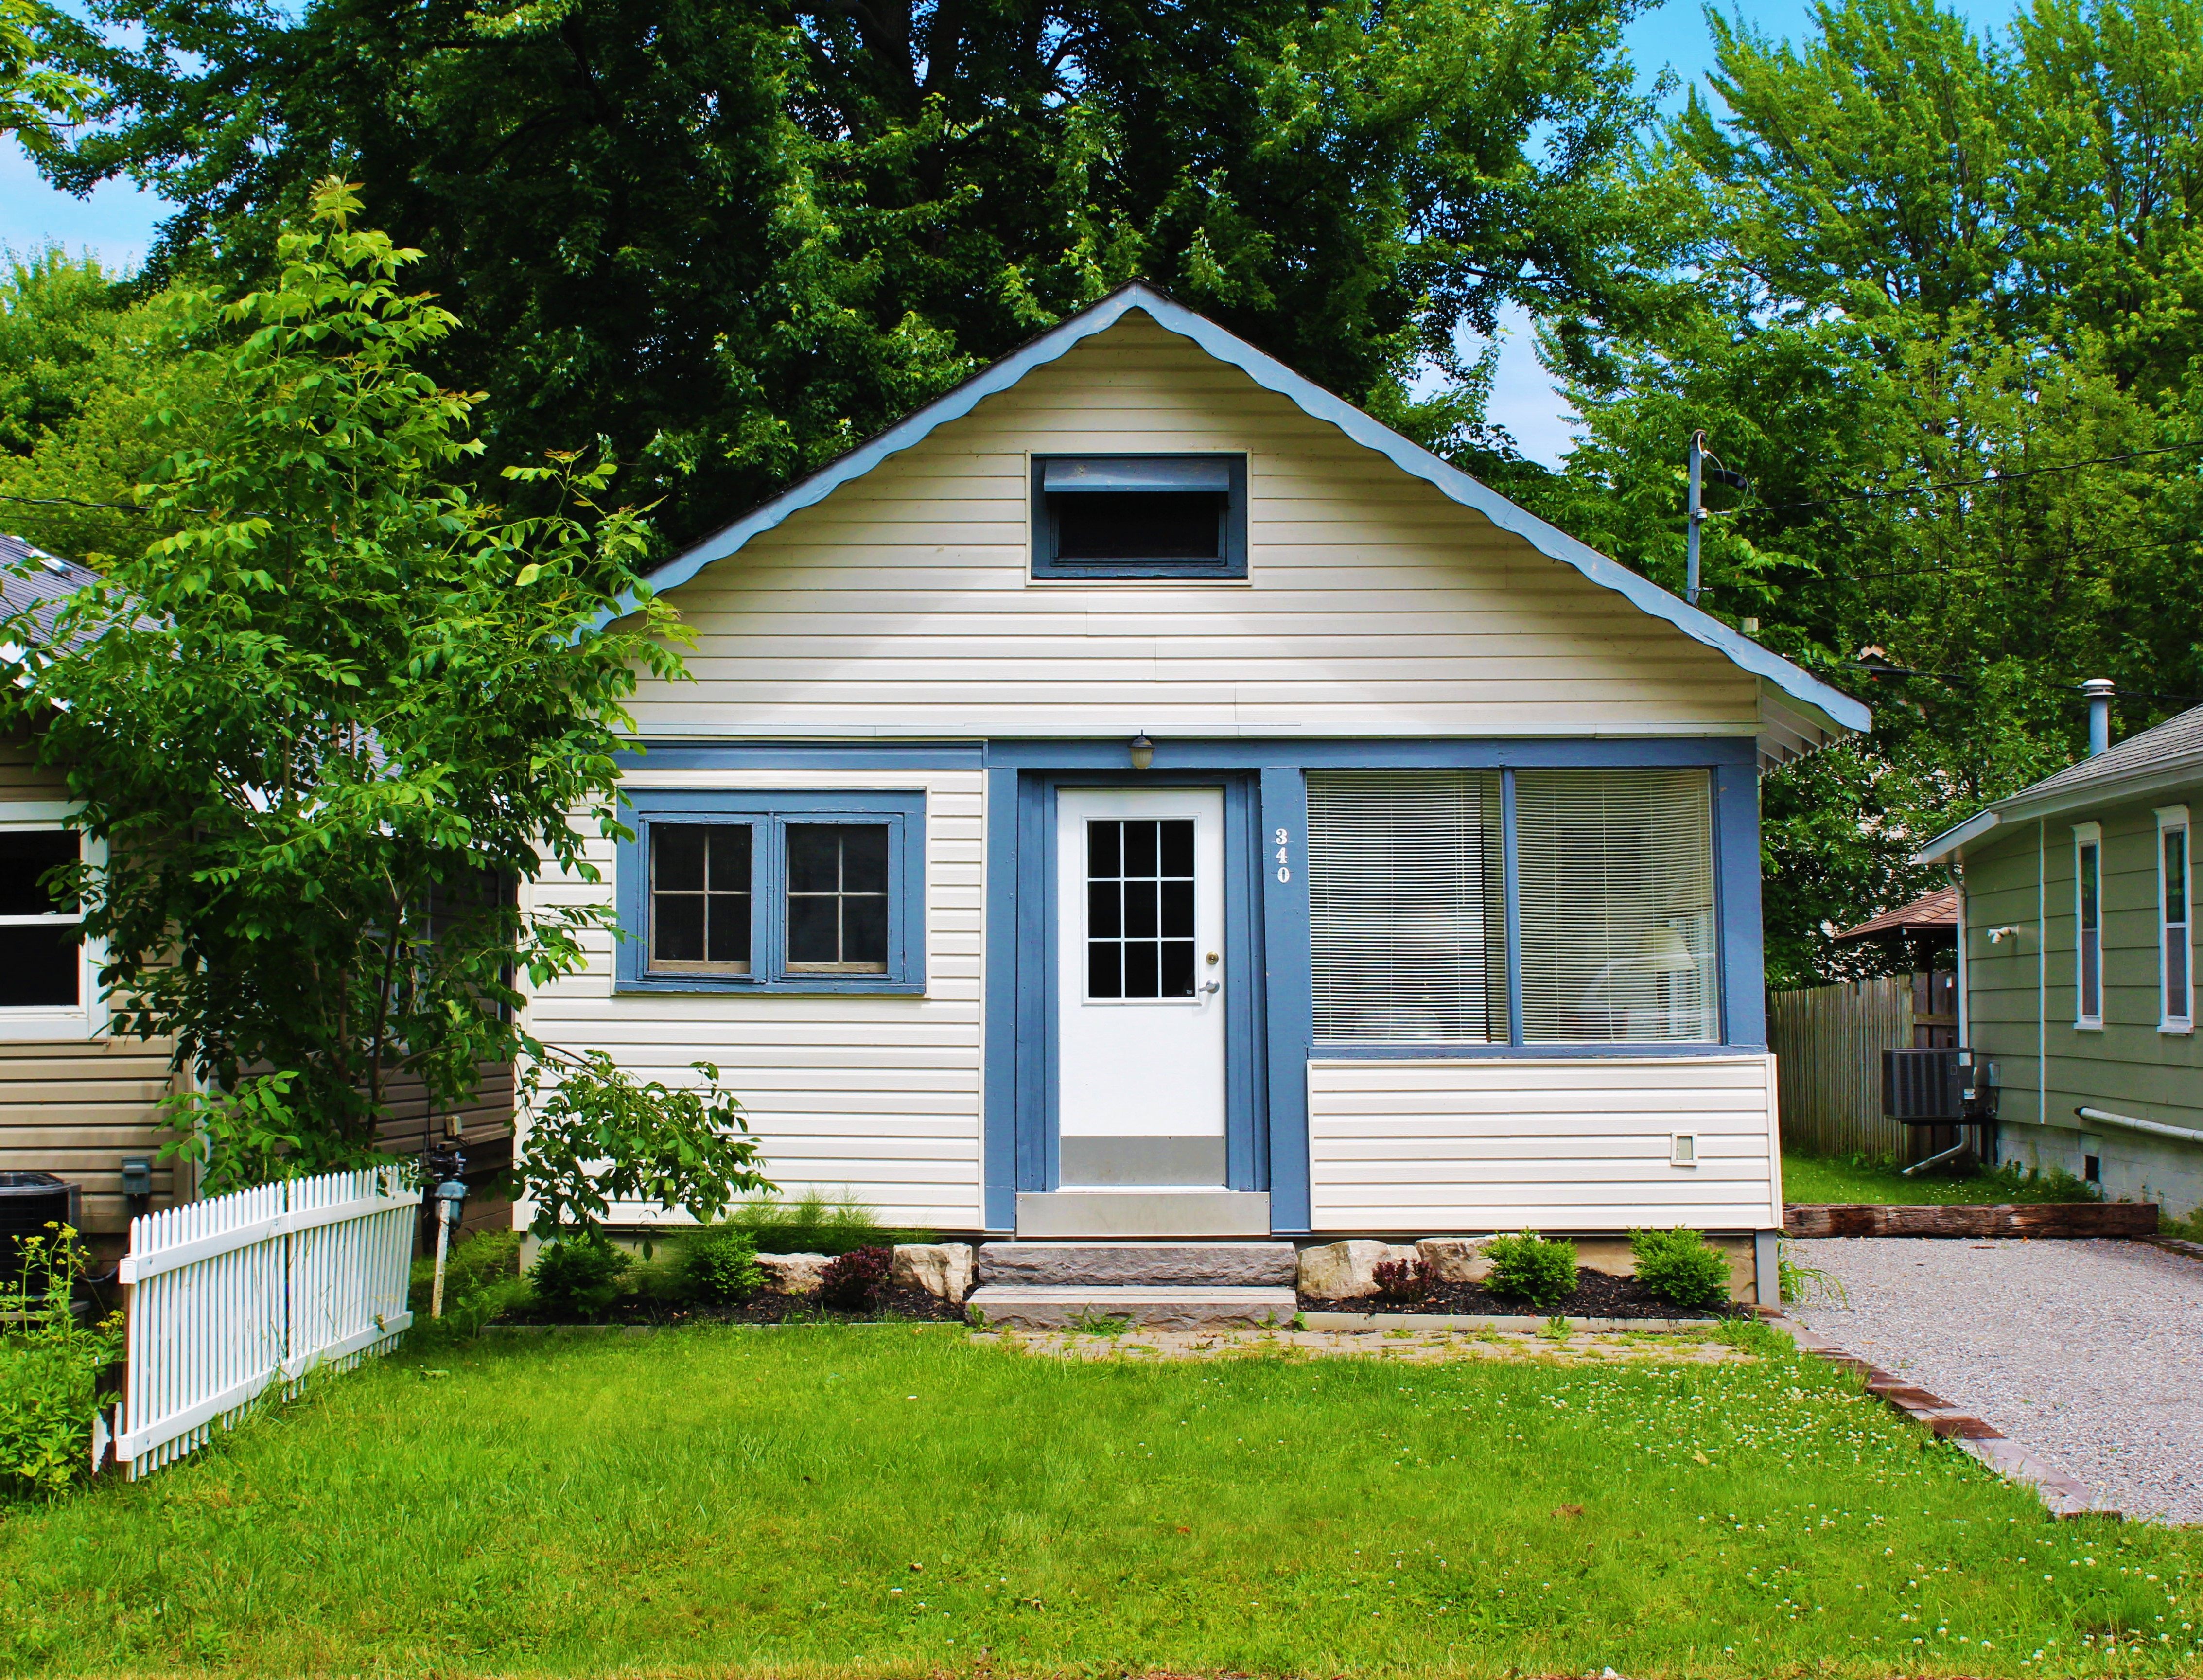 Crystal Beach Cottages For Rent - Bay Beach Bliss